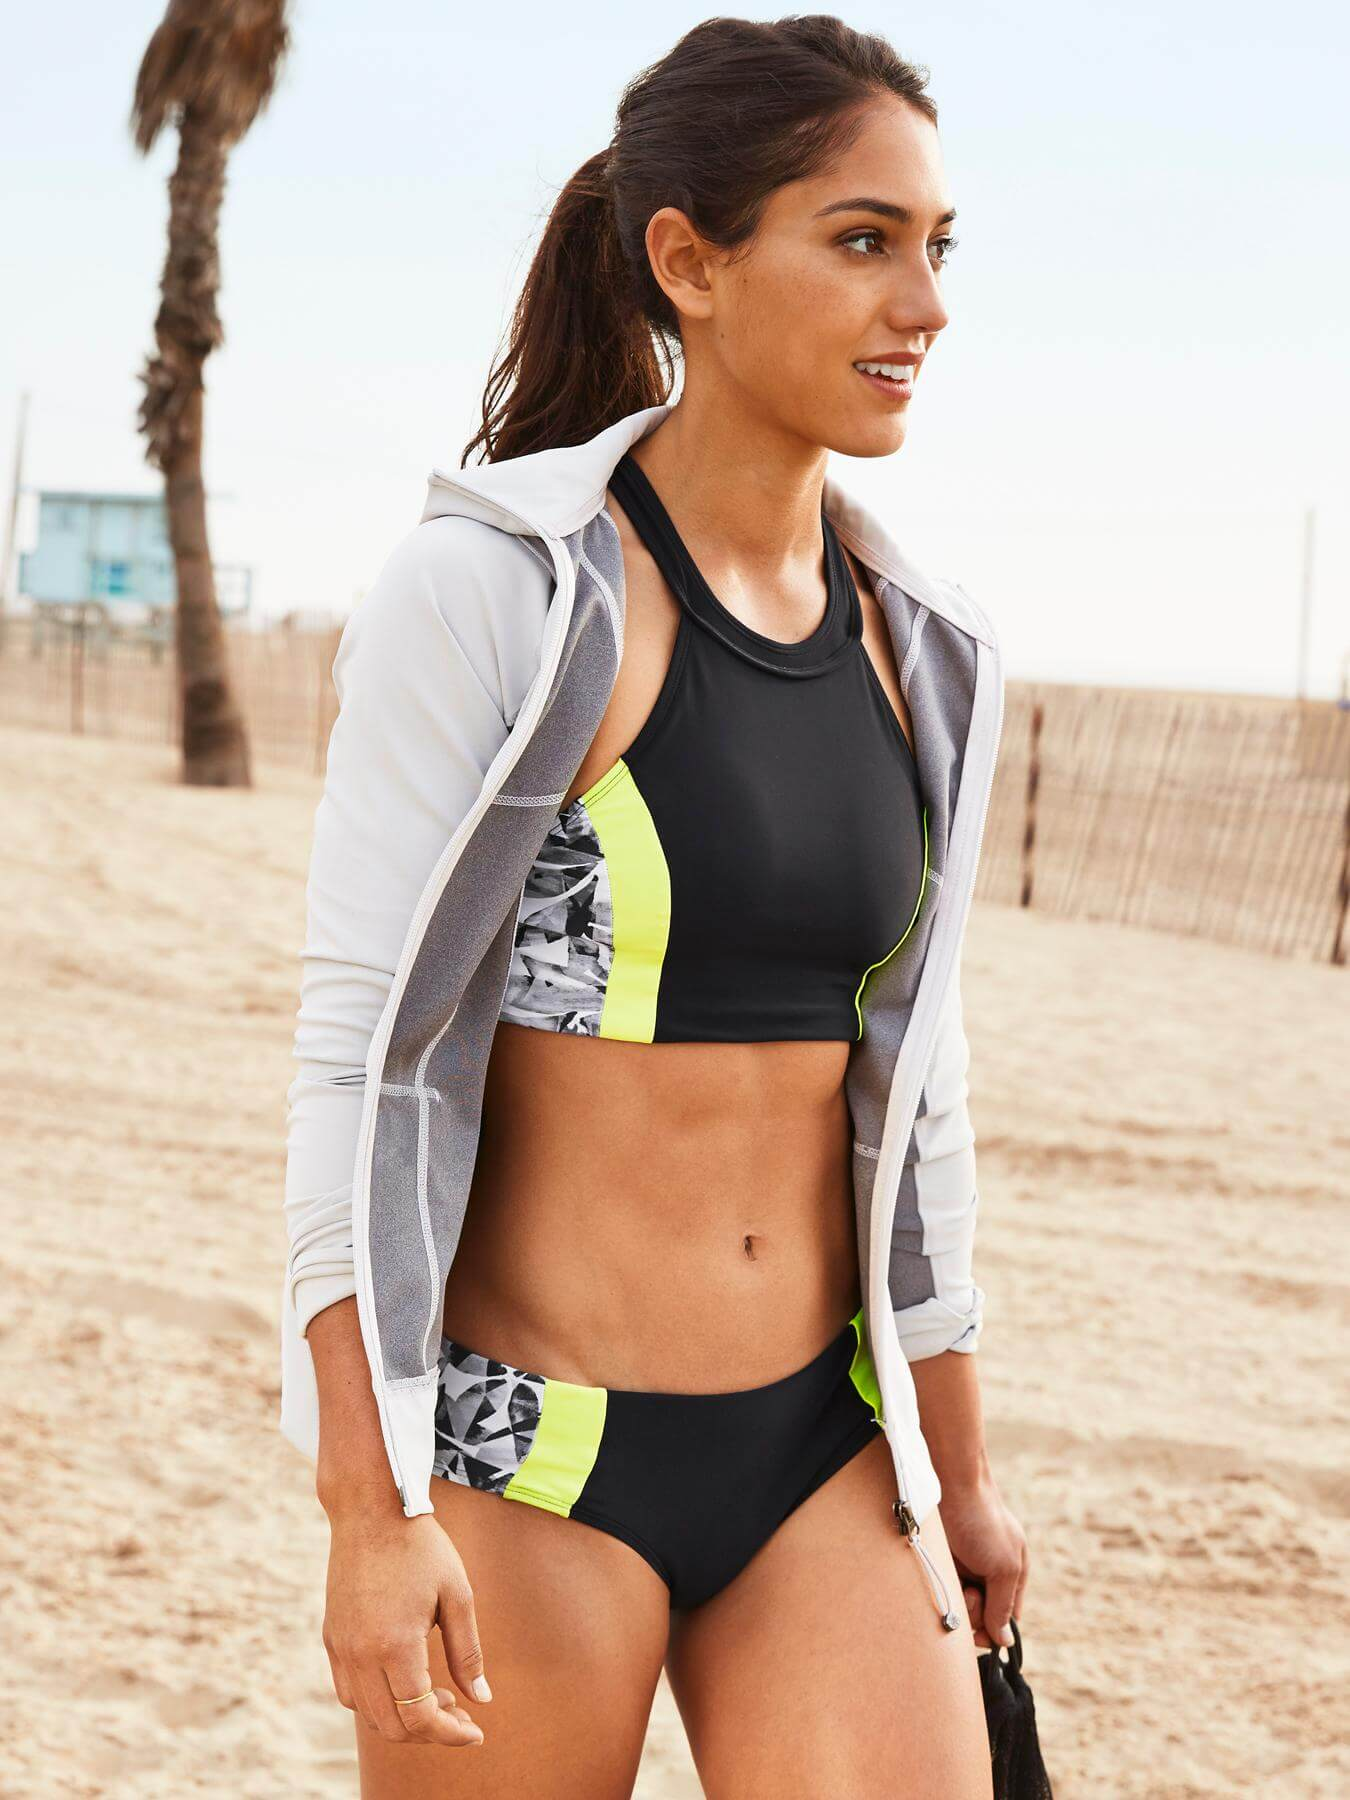 Allison Stokke Photoshoot